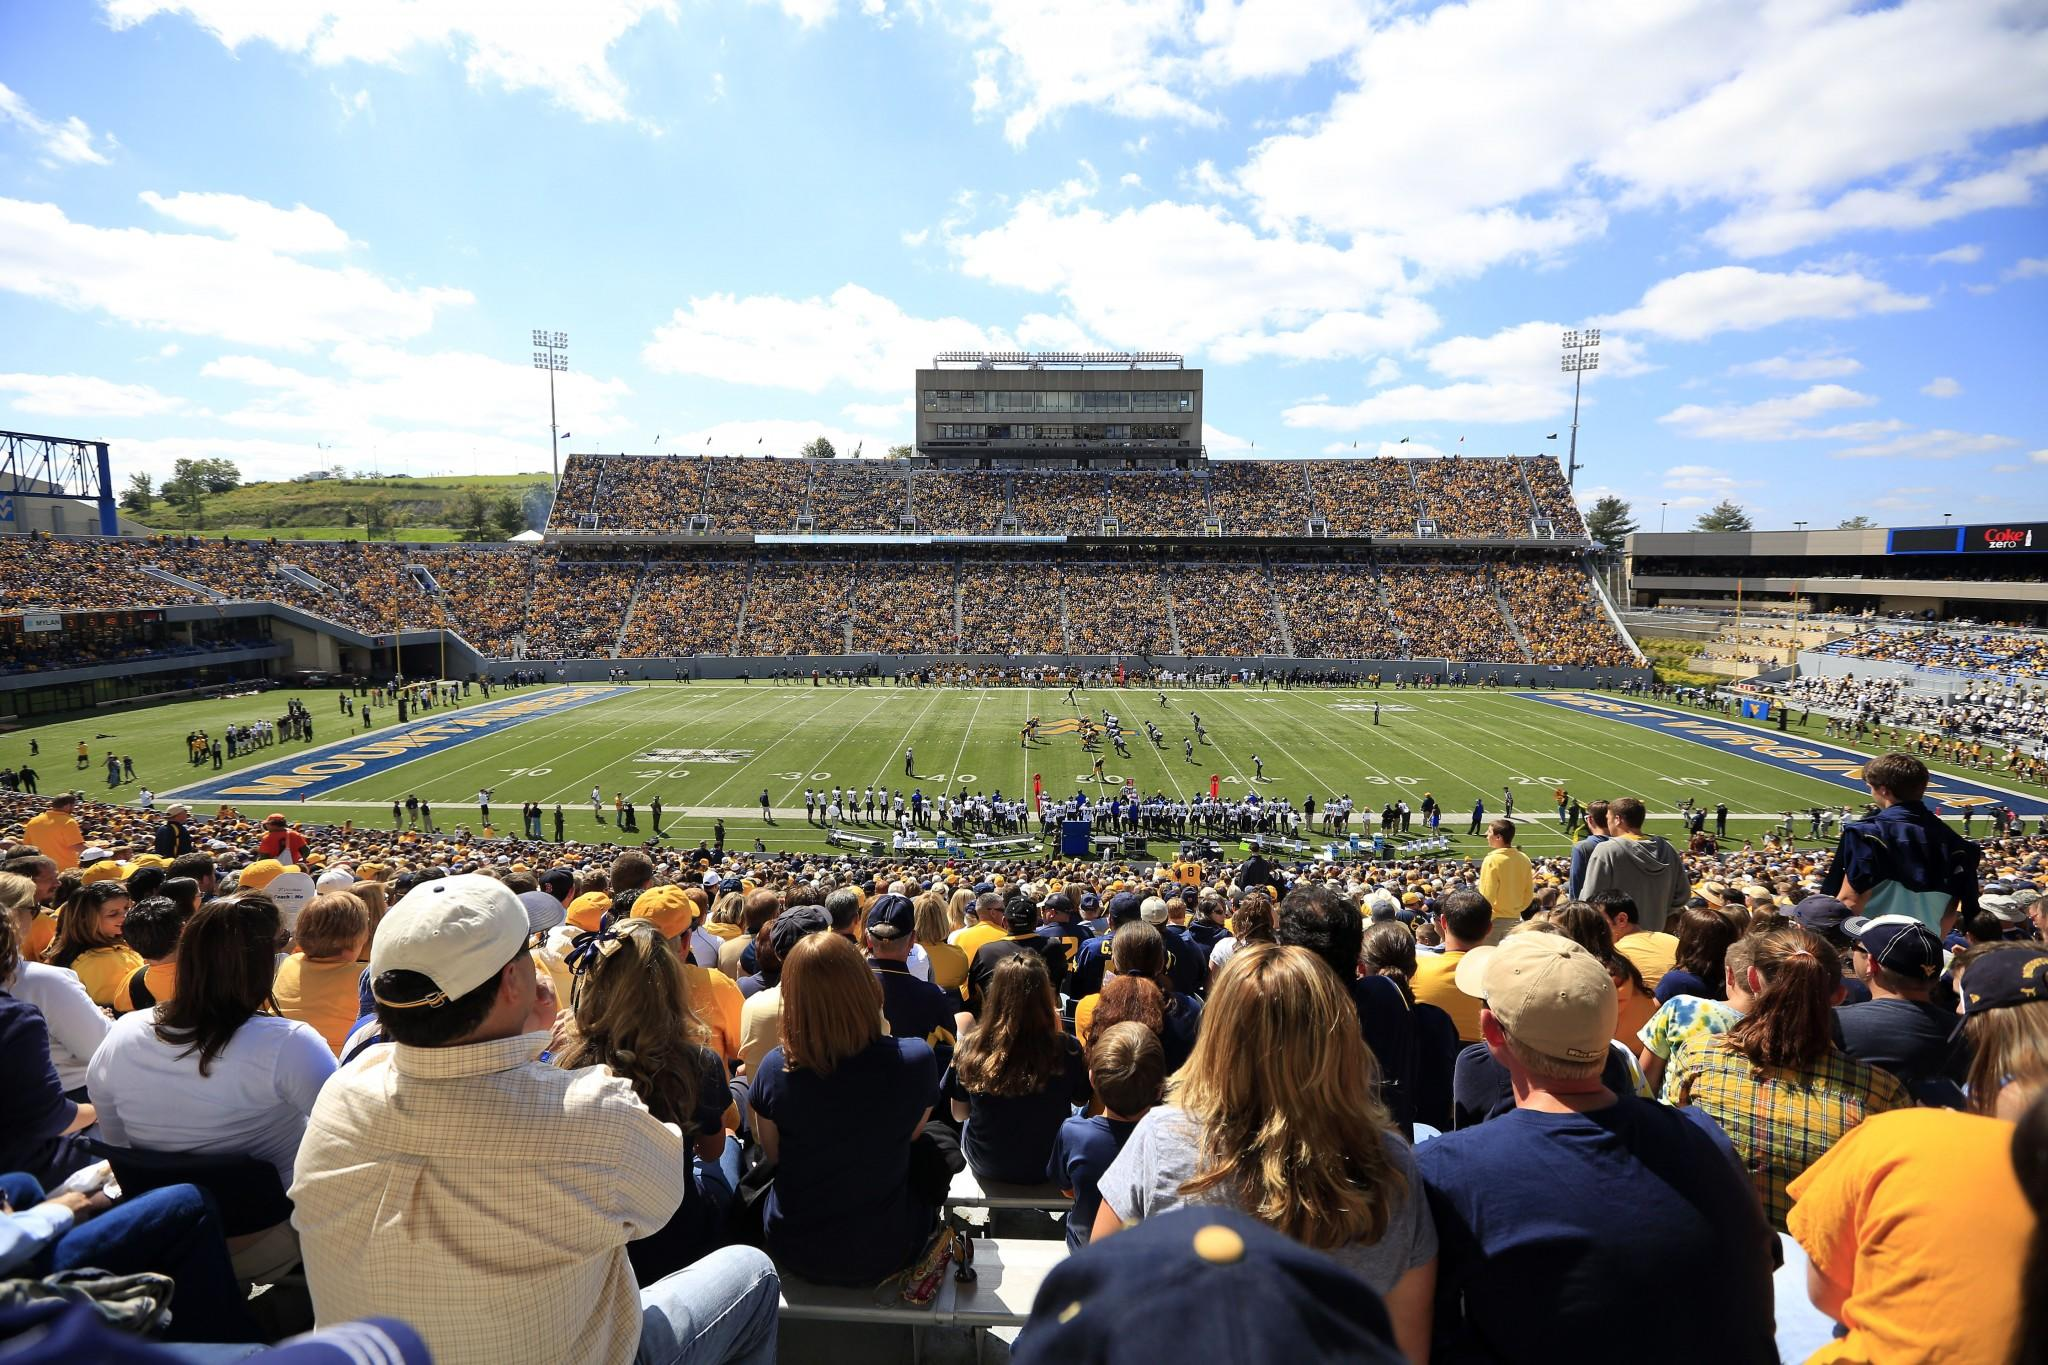 79-year-old with cancer gets to go on field at West Virginia